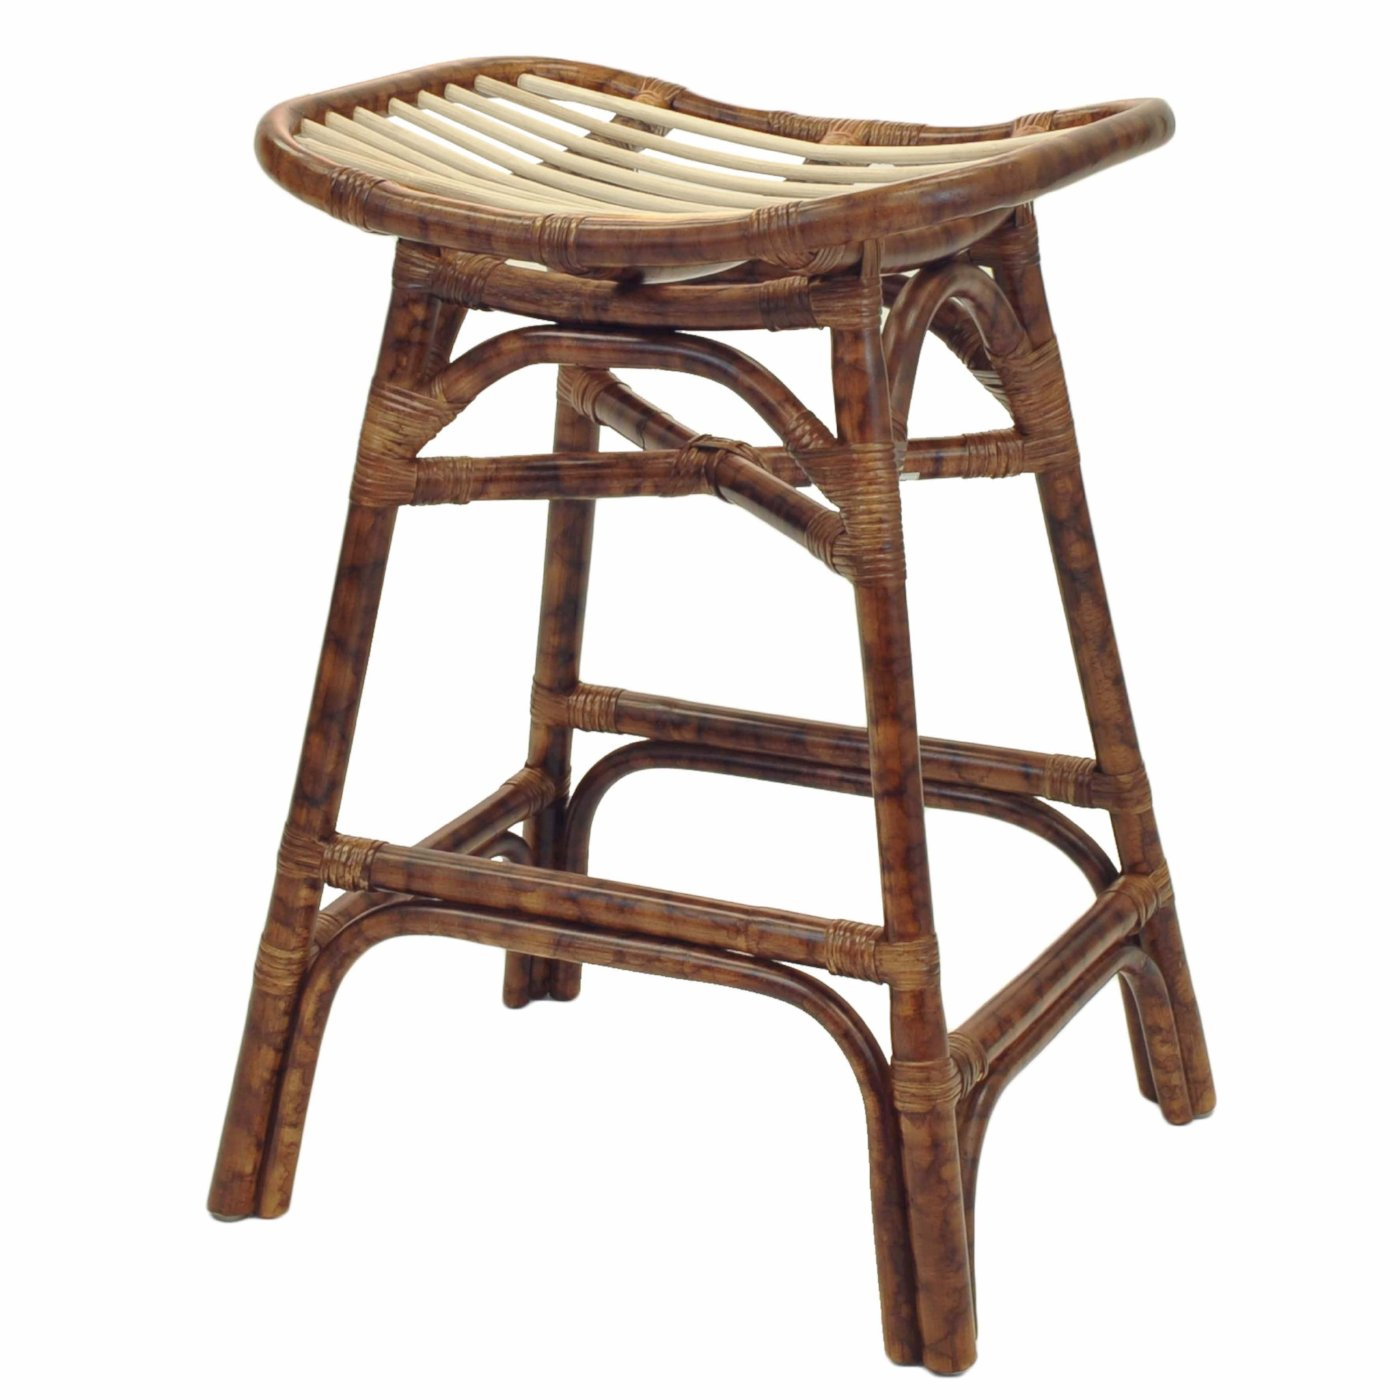 org all insight outdoor unique beautiful home bar stool furniture counter cnxconsortium wicker stools weather of